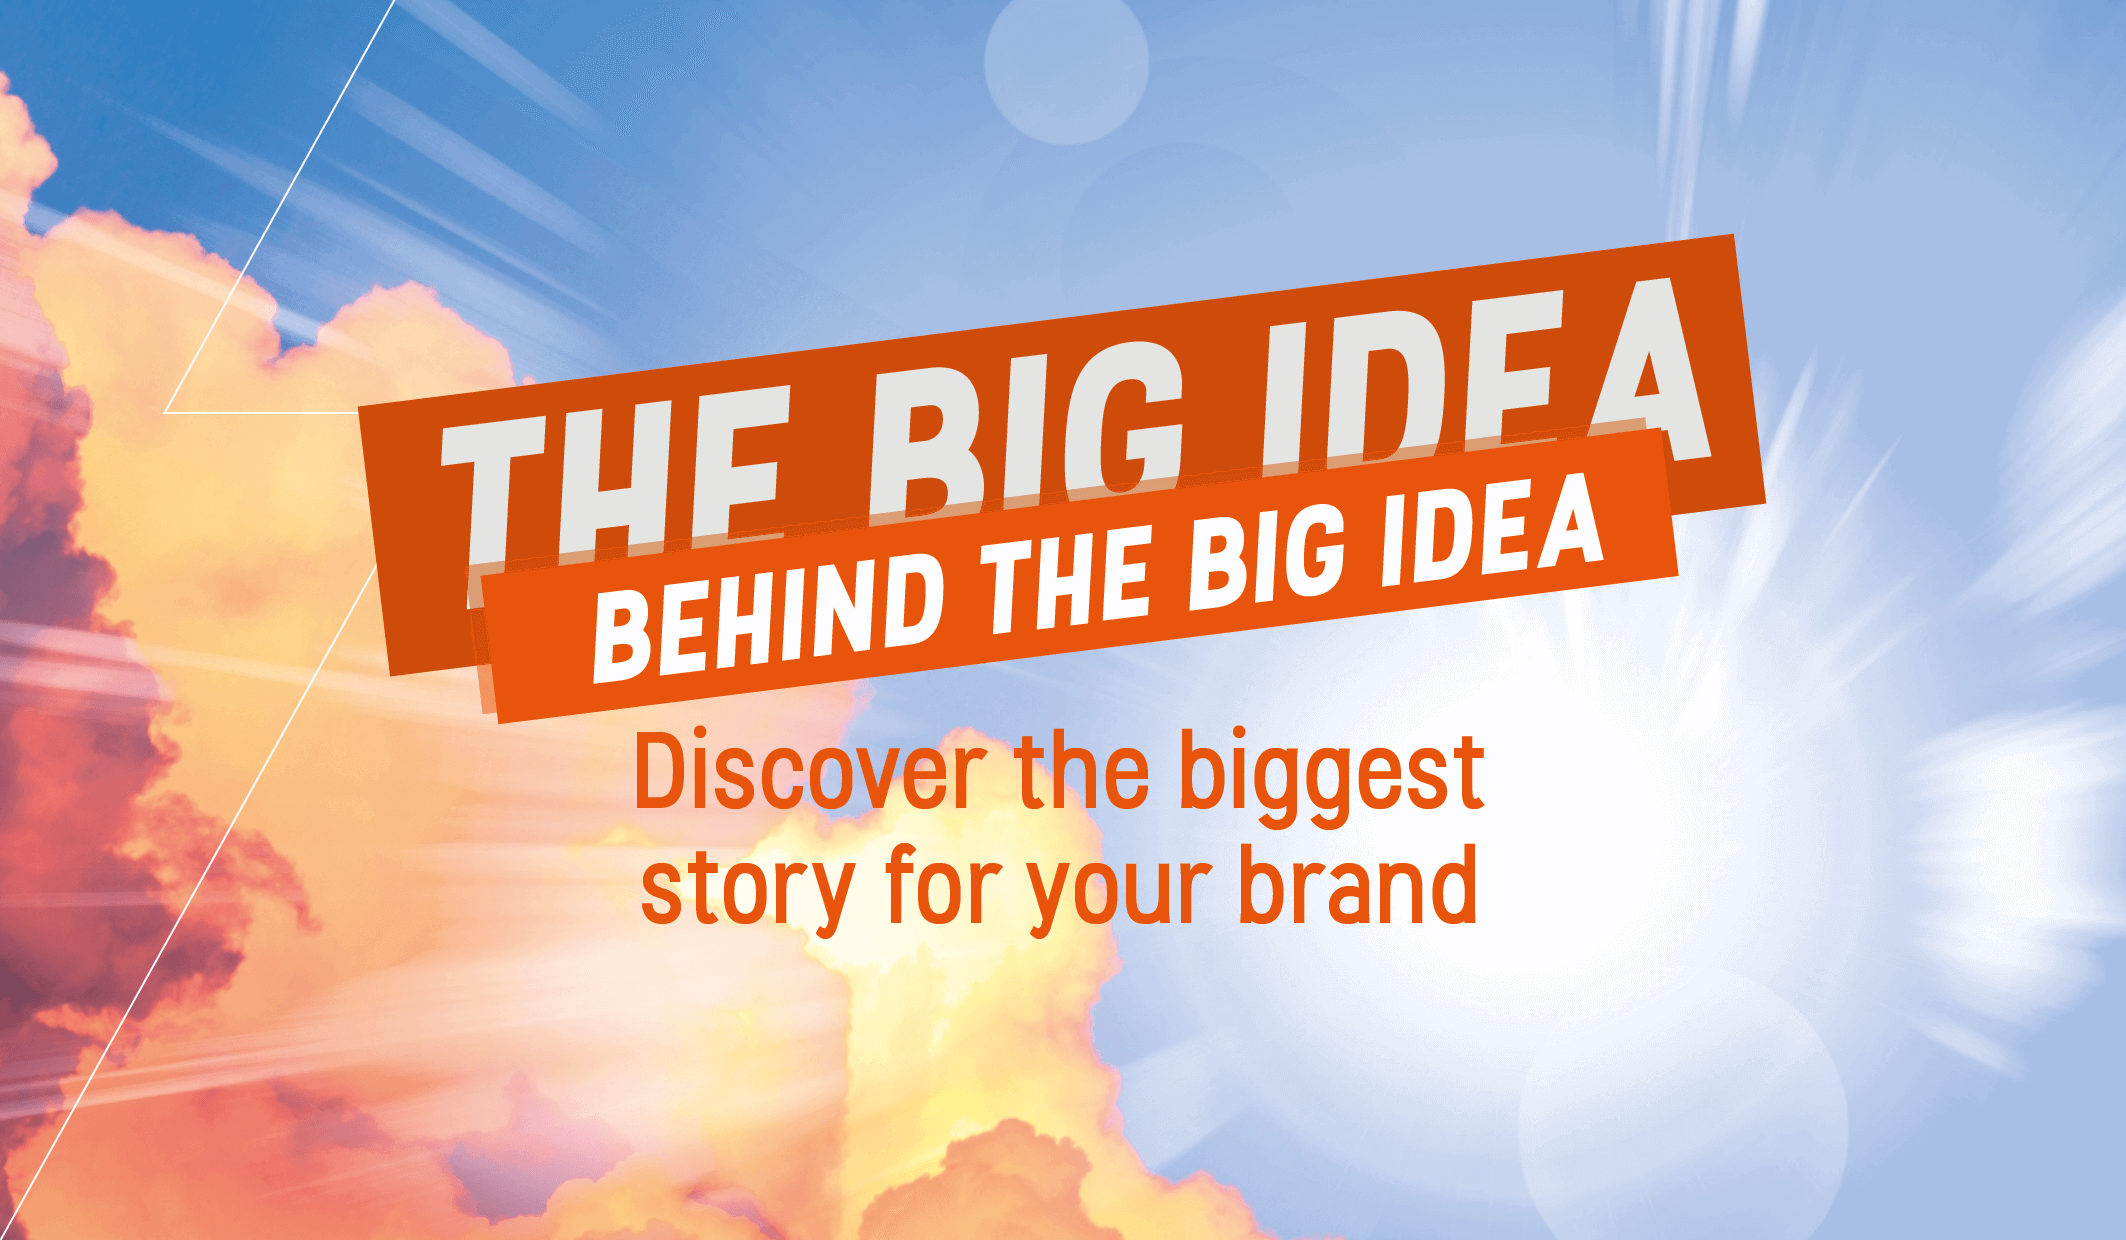 The big idea behind the big idea